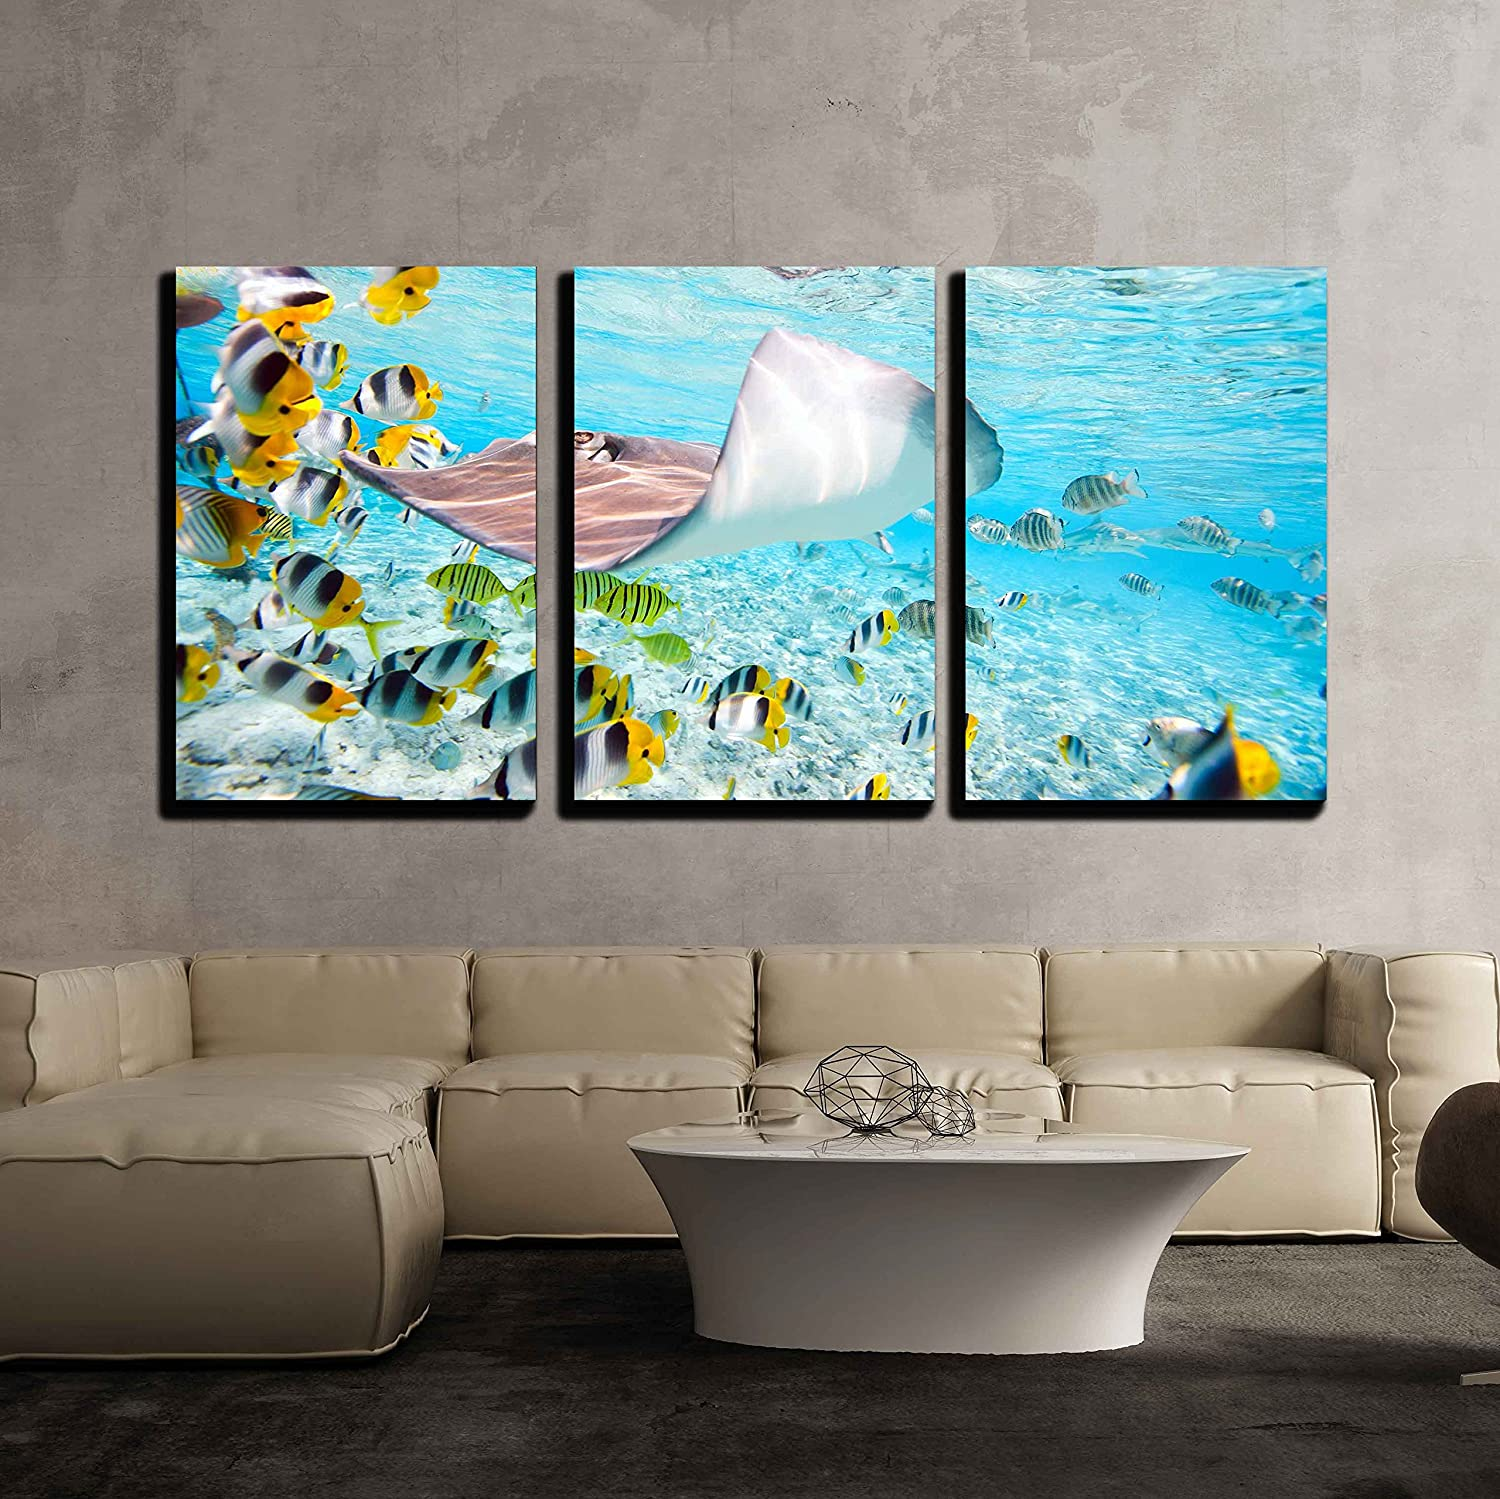 """wall26 - 3 Piece Canvas Wall Art - Colorful Fish, Stingray and Black Tipped Sharks Underwater in Bora Bora Lagoon - Modern Home Decor Stretched and Framed Ready to Hang - 16""""x24""""x3 Panels"""